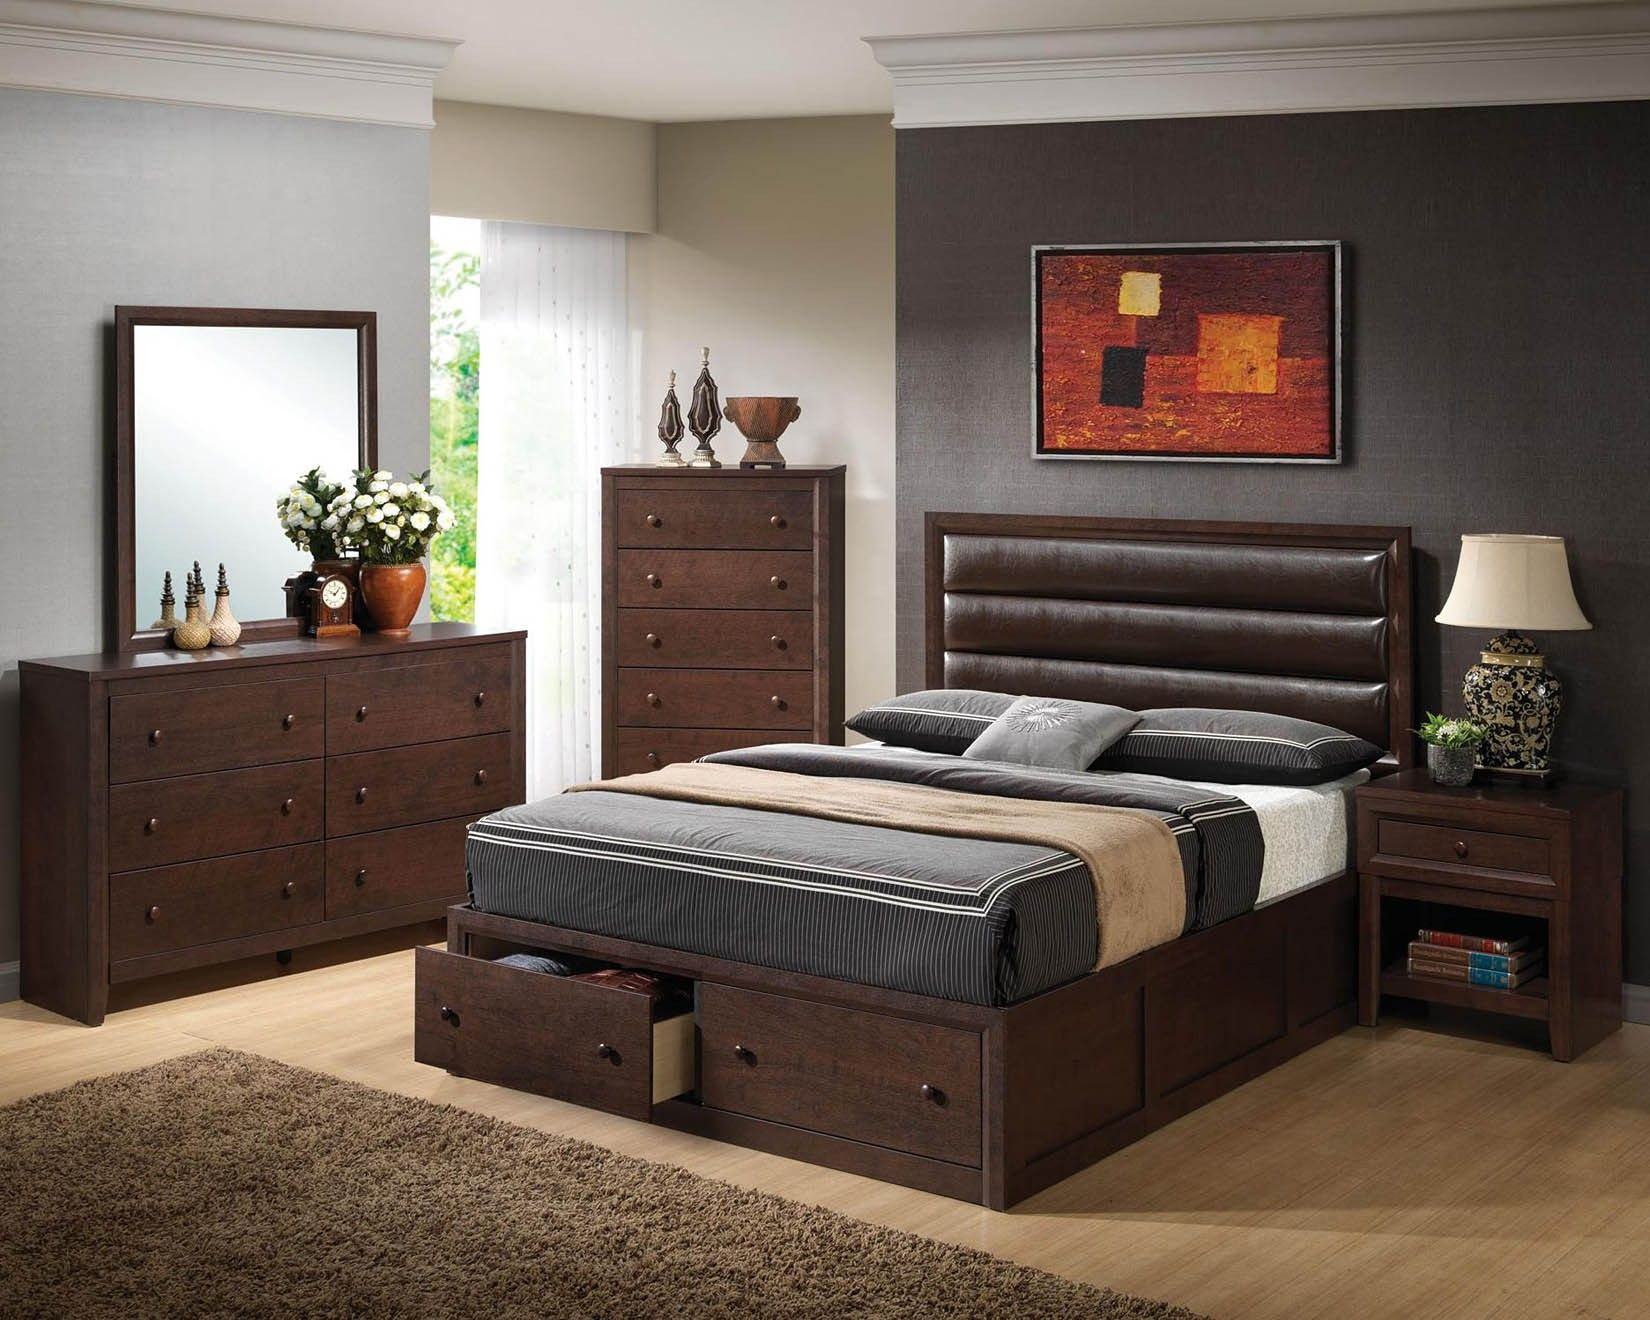 Bedroom Furniture Designs Terrific Black Wooden Bedroom Furniture Set And Modern Leather